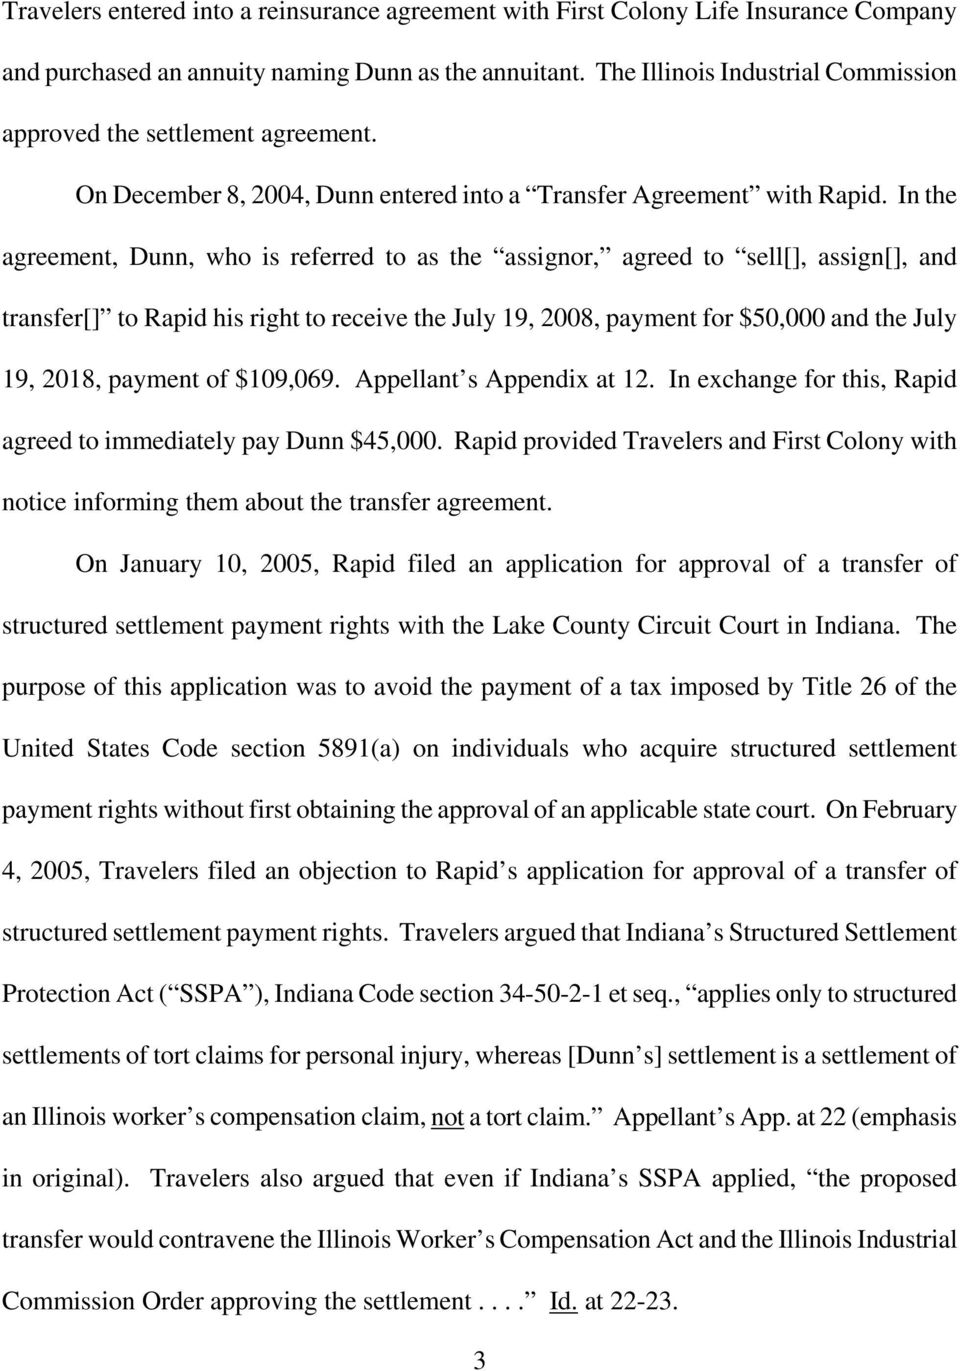 In the agreement, Dunn, who is referred to as the assignor, agreed to sell[], assign[], and transfer[] to Rapid his right to receive the July 19, 2008, payment for $50,000 and the July 19, 2018,